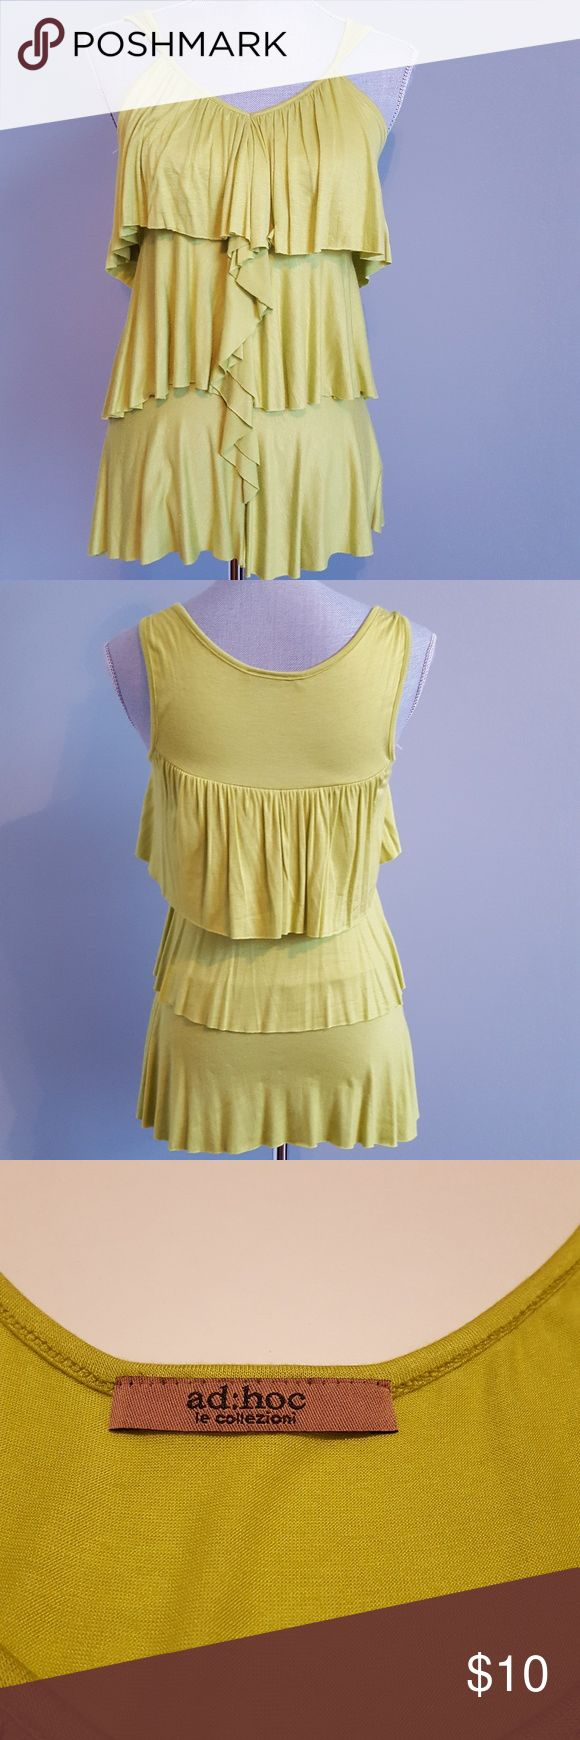 "Lime Green Ruffled Tank Top by Ad Hoc Lime Green Ruffled Tee by Ad Hoc The color is a bright lime green...closer to the picture of the tag. The size is M. 16"" armpit to armpit 25"" from back neck edge to hem Like New Condition Ad Hoc Tops Tank Tops"